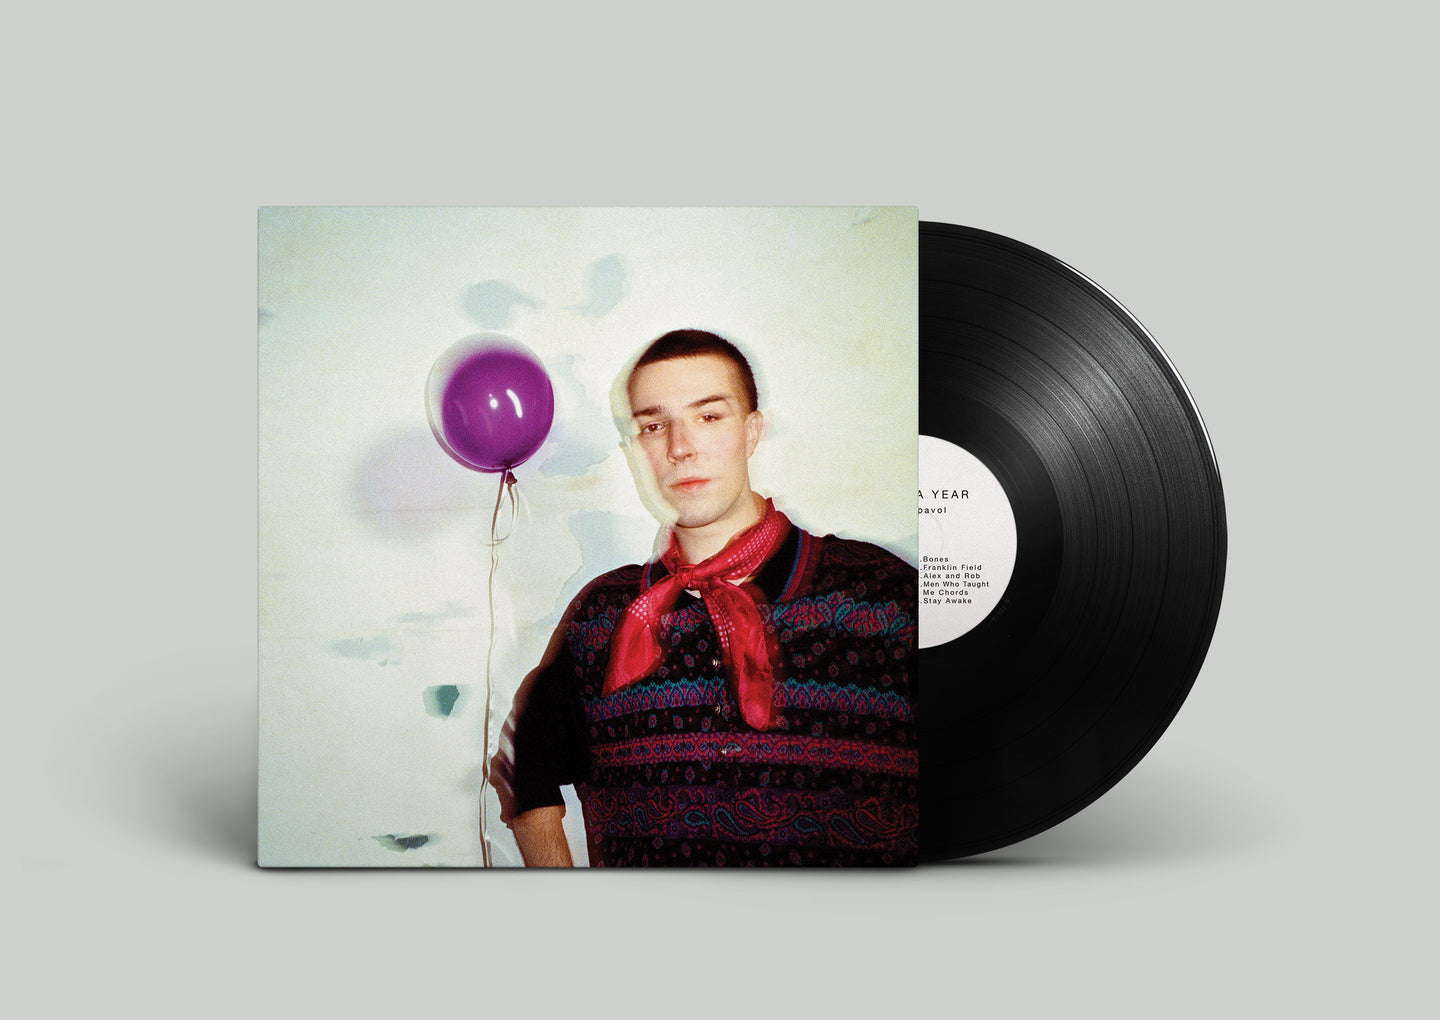 Grant Pavol - About A Year LP